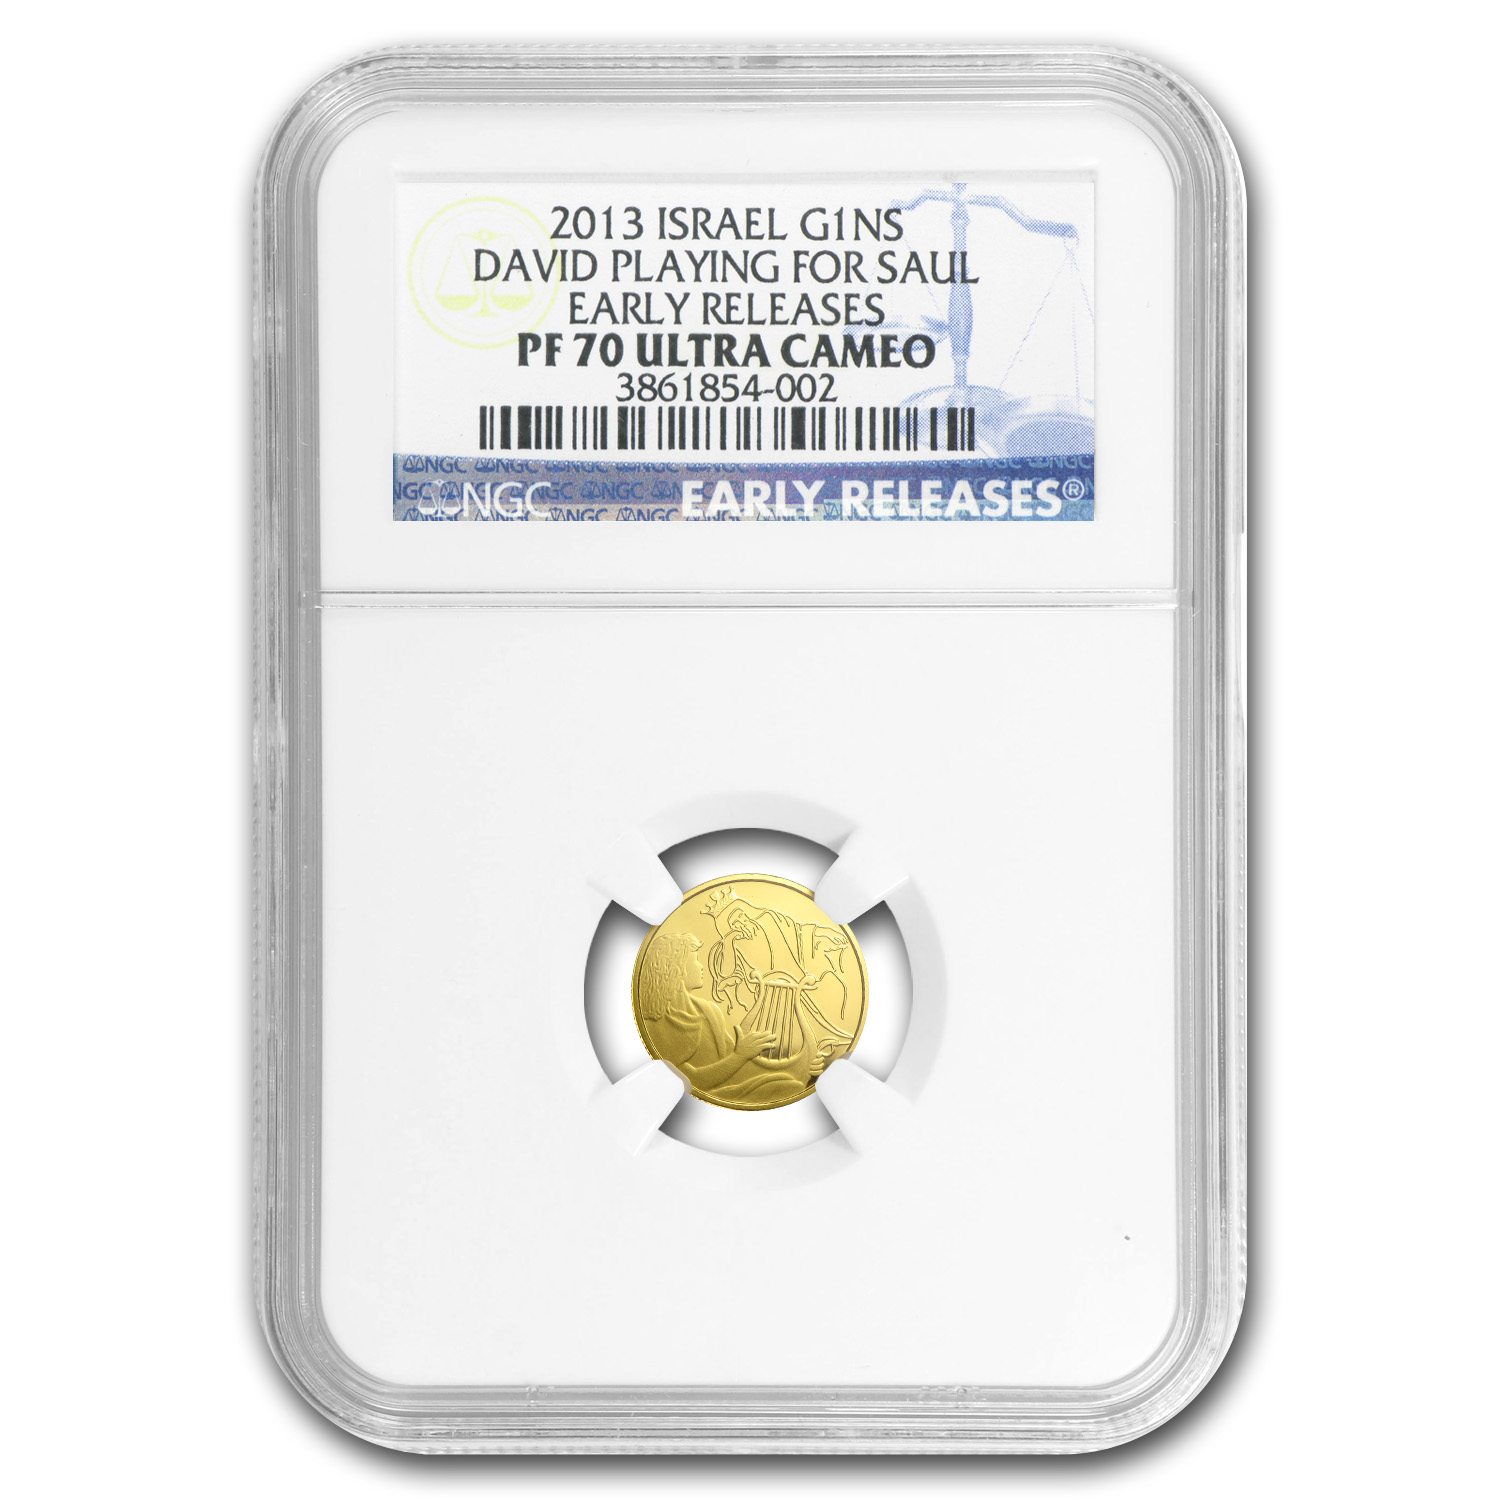 2013 Israel 1/25 oz Pf Gold David Playing for Saul PF-70 NGC (ER)